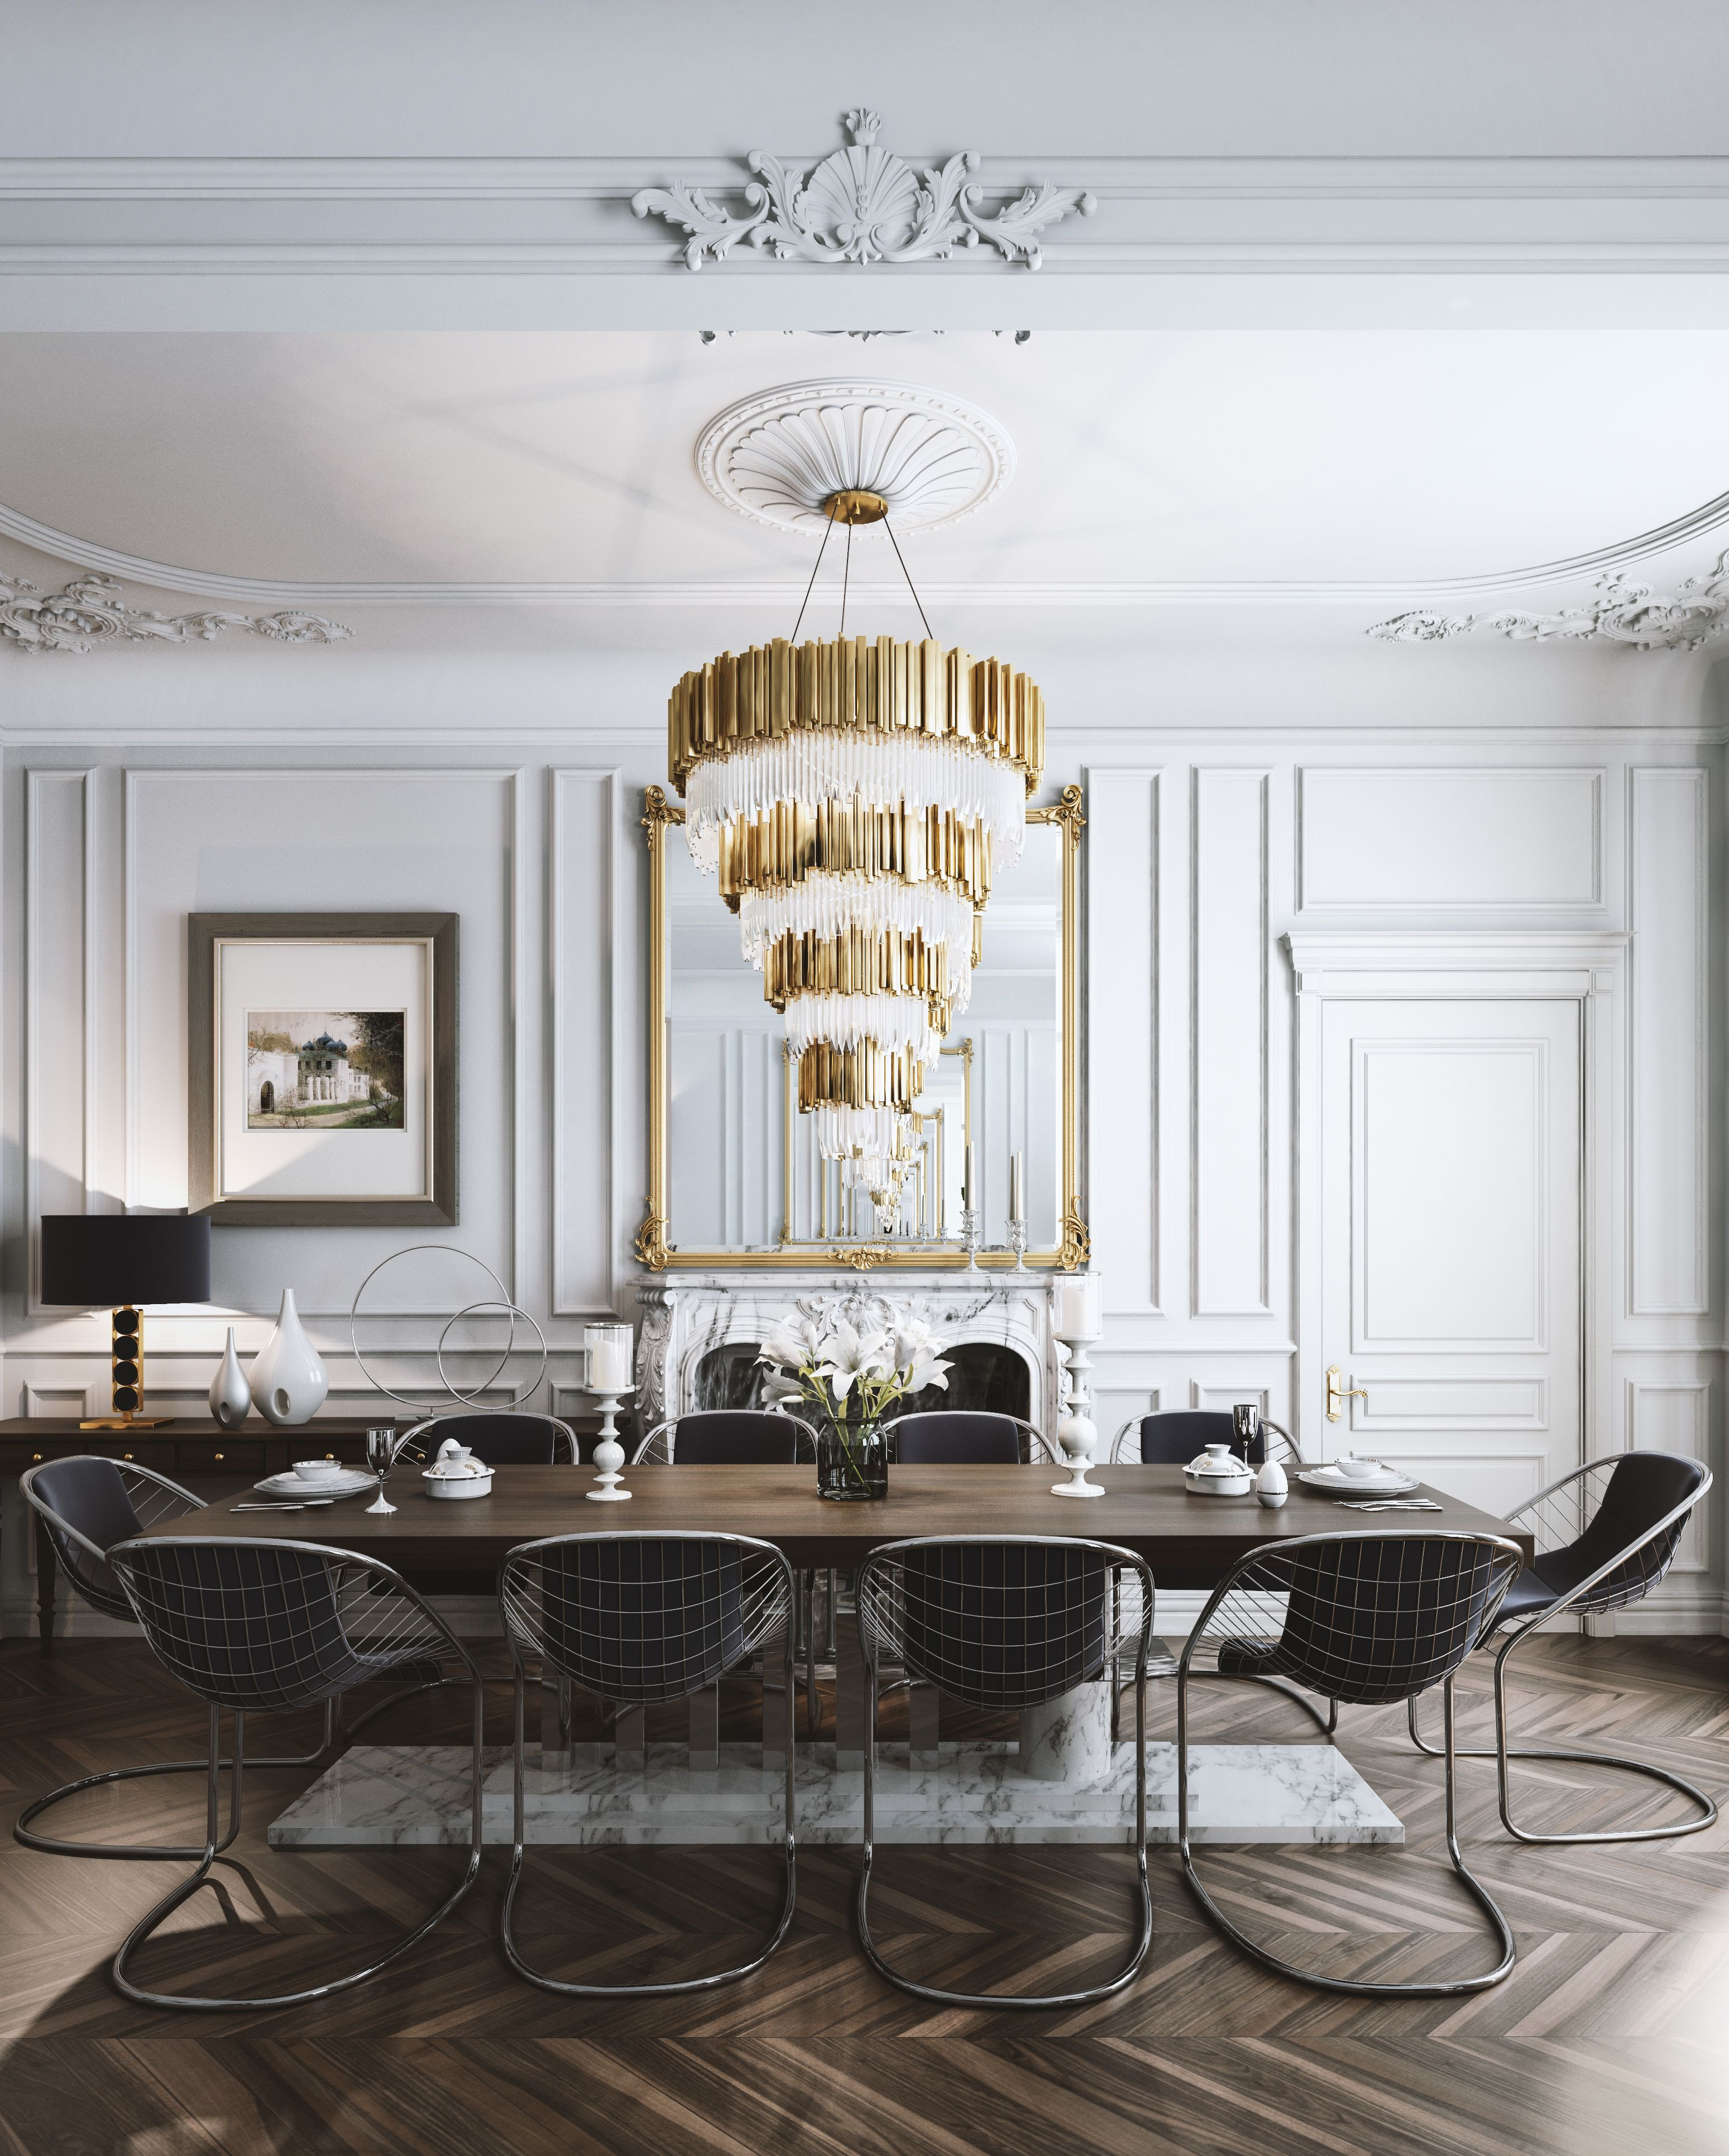 70 Modern Dining Room Ideas For 2019: Interior Design And Visualization On A Project In Paris